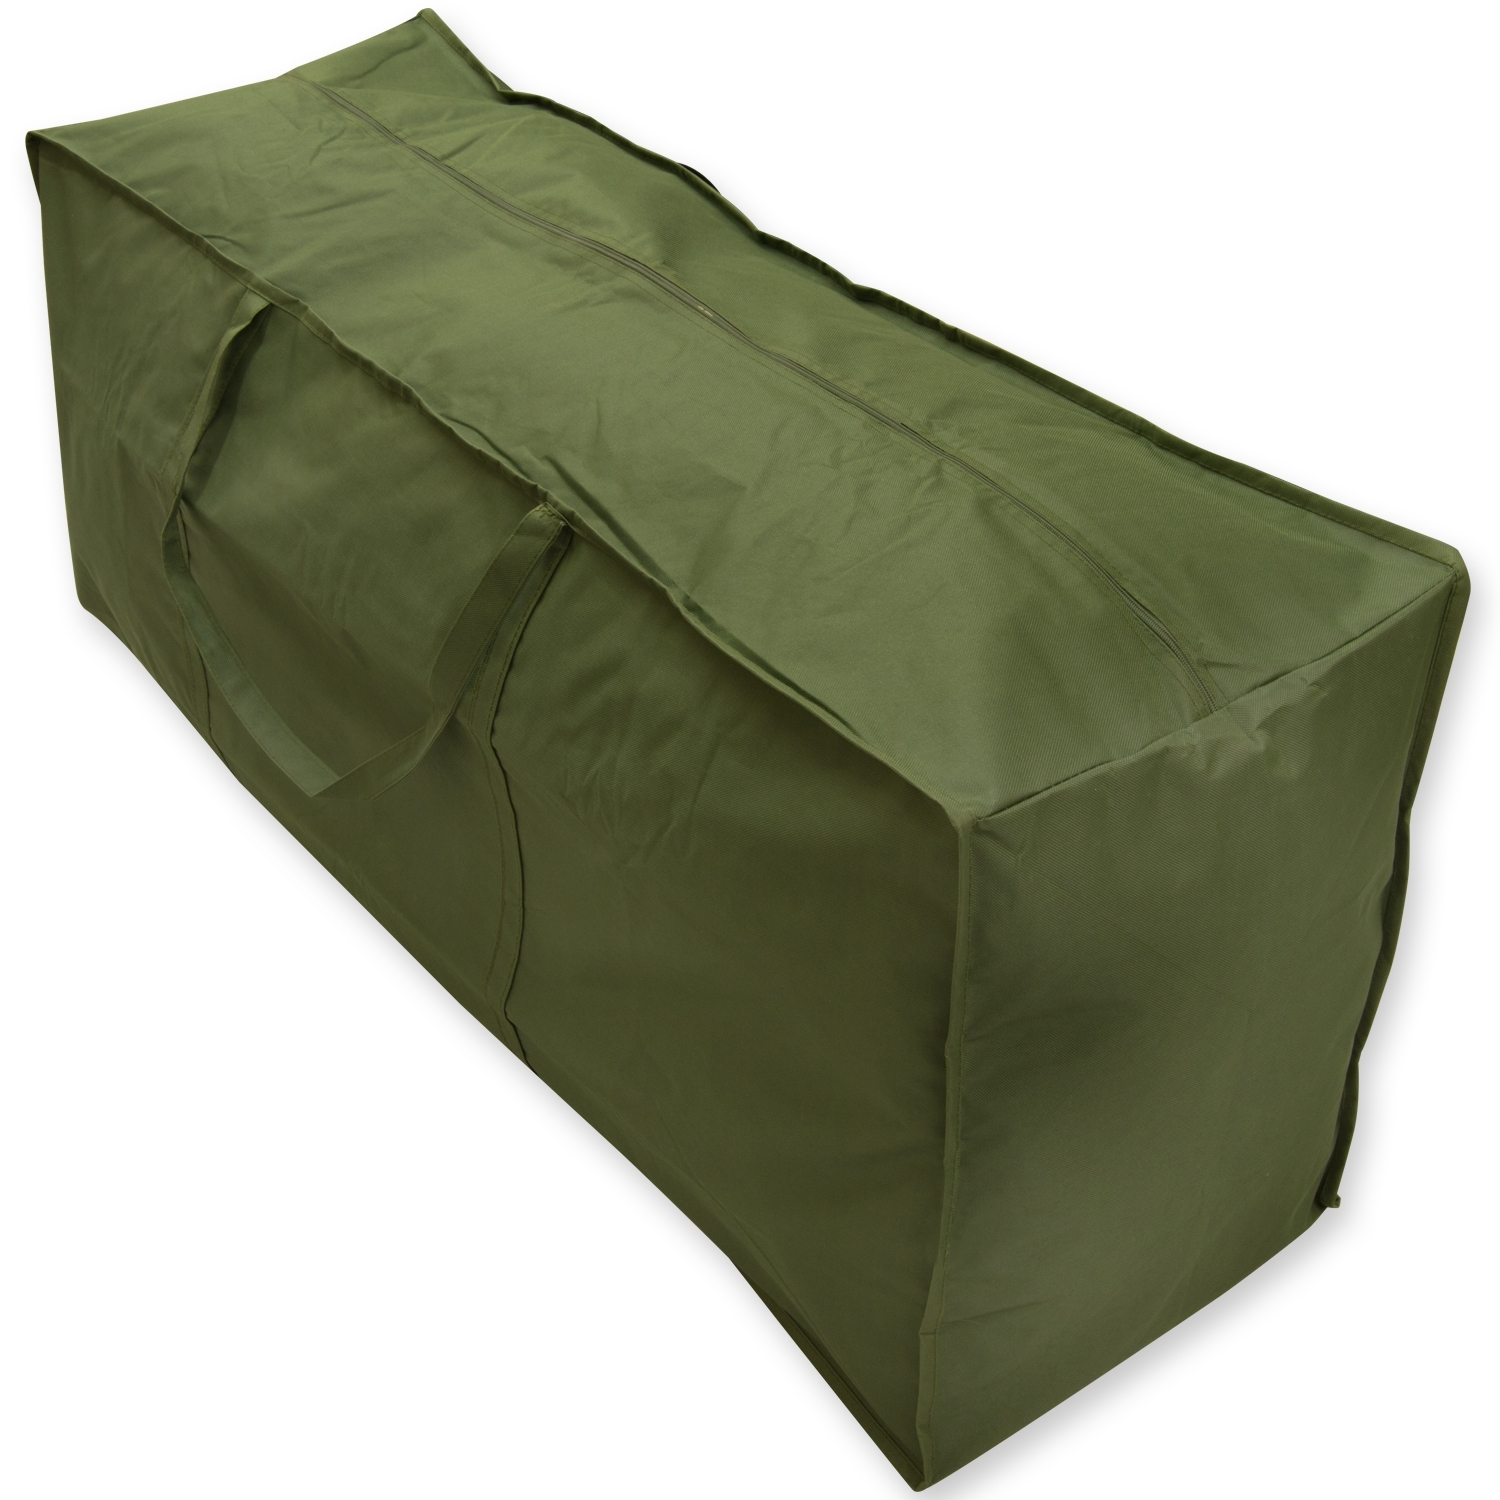 Image of: Oxbridge Furniture Cushion Storage Bag Furniture Outdoor Value Intended For Outdoor Cushion Storage Bags To Save At Outdoor Cushion Storage Bags